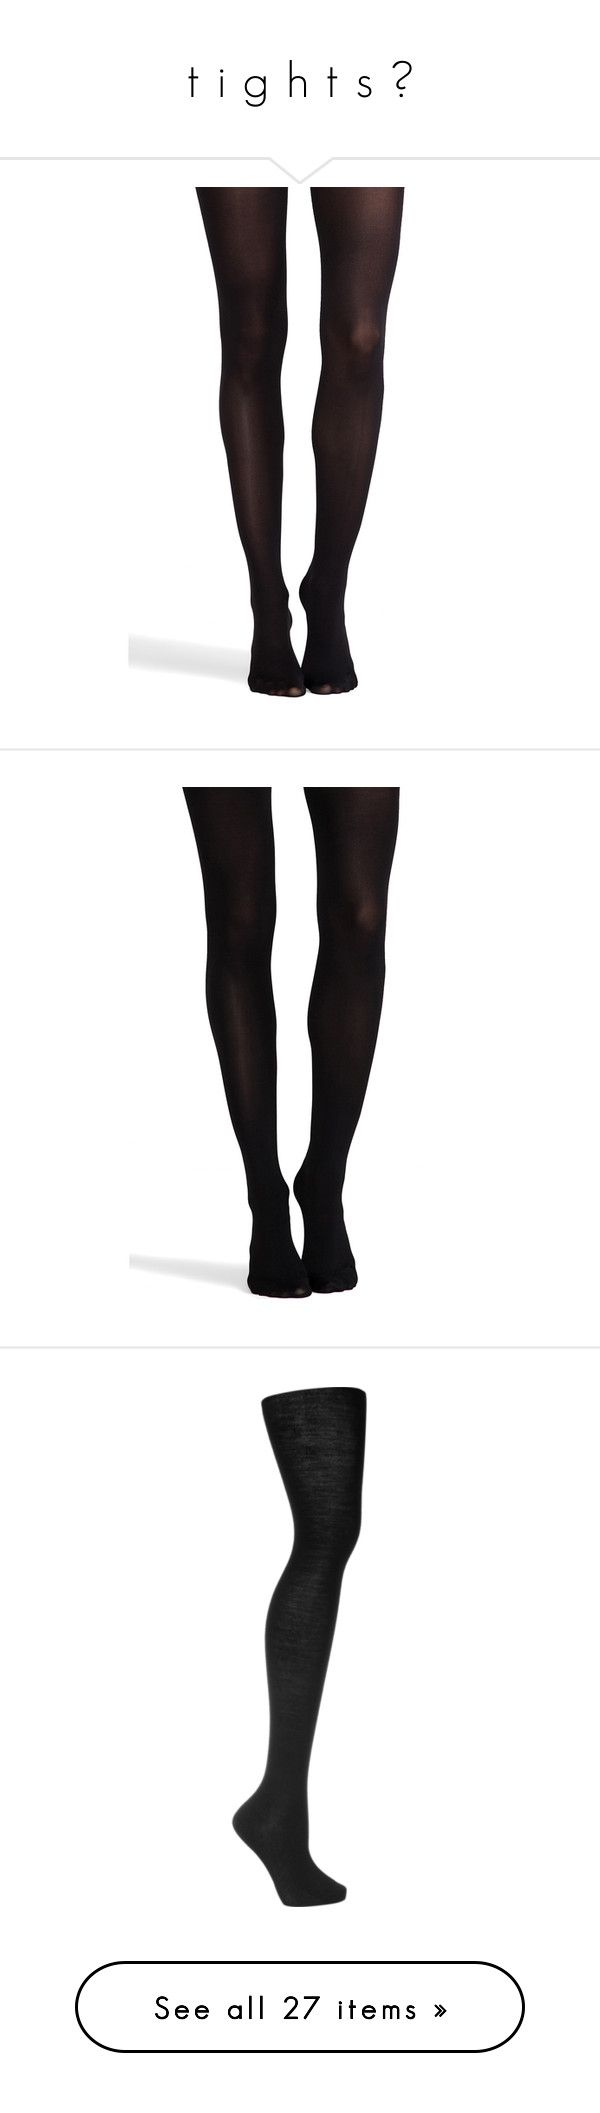 """""""t i g h t s ☾"""" by upinflaaames ❤ liked on Polyvore featuring intimates, hosiery, tights, black, nylon stockings, spanx hosiery, nylon hosiery, spanx tights, spanx pantyhose and socks"""